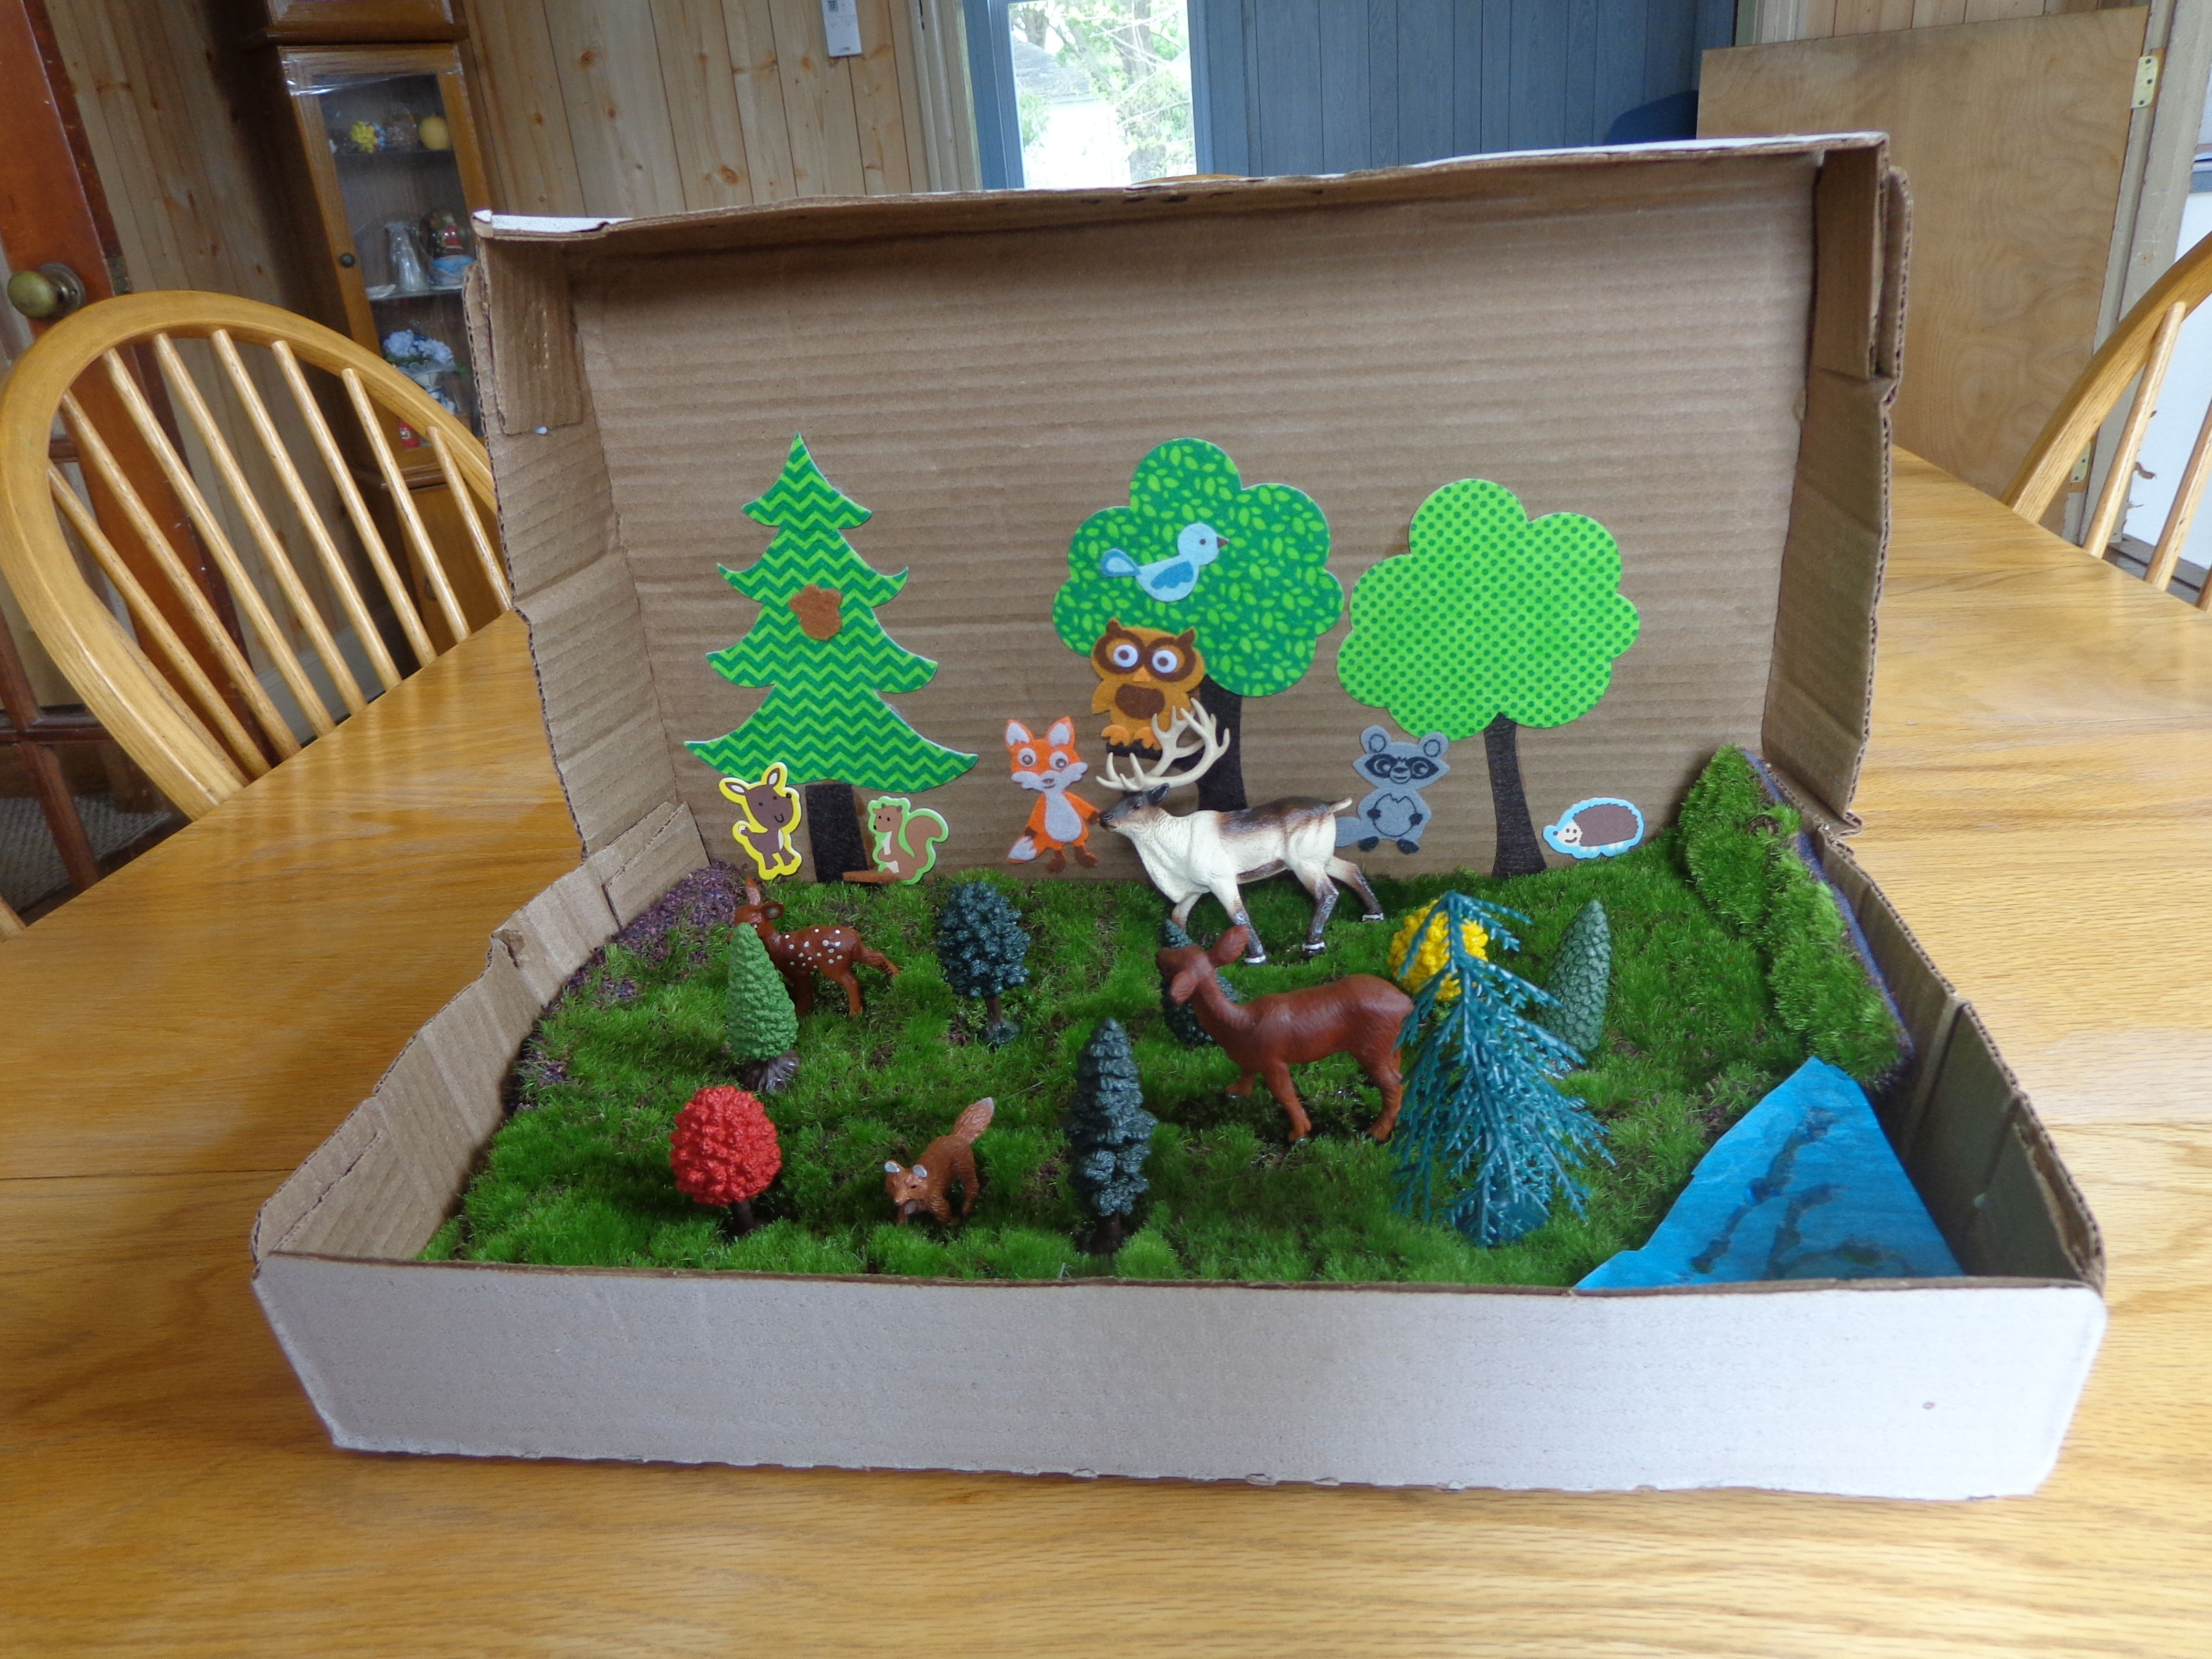 Make Your Own Diorama: A Forest Diorama Craft Project That's Fun For The Family